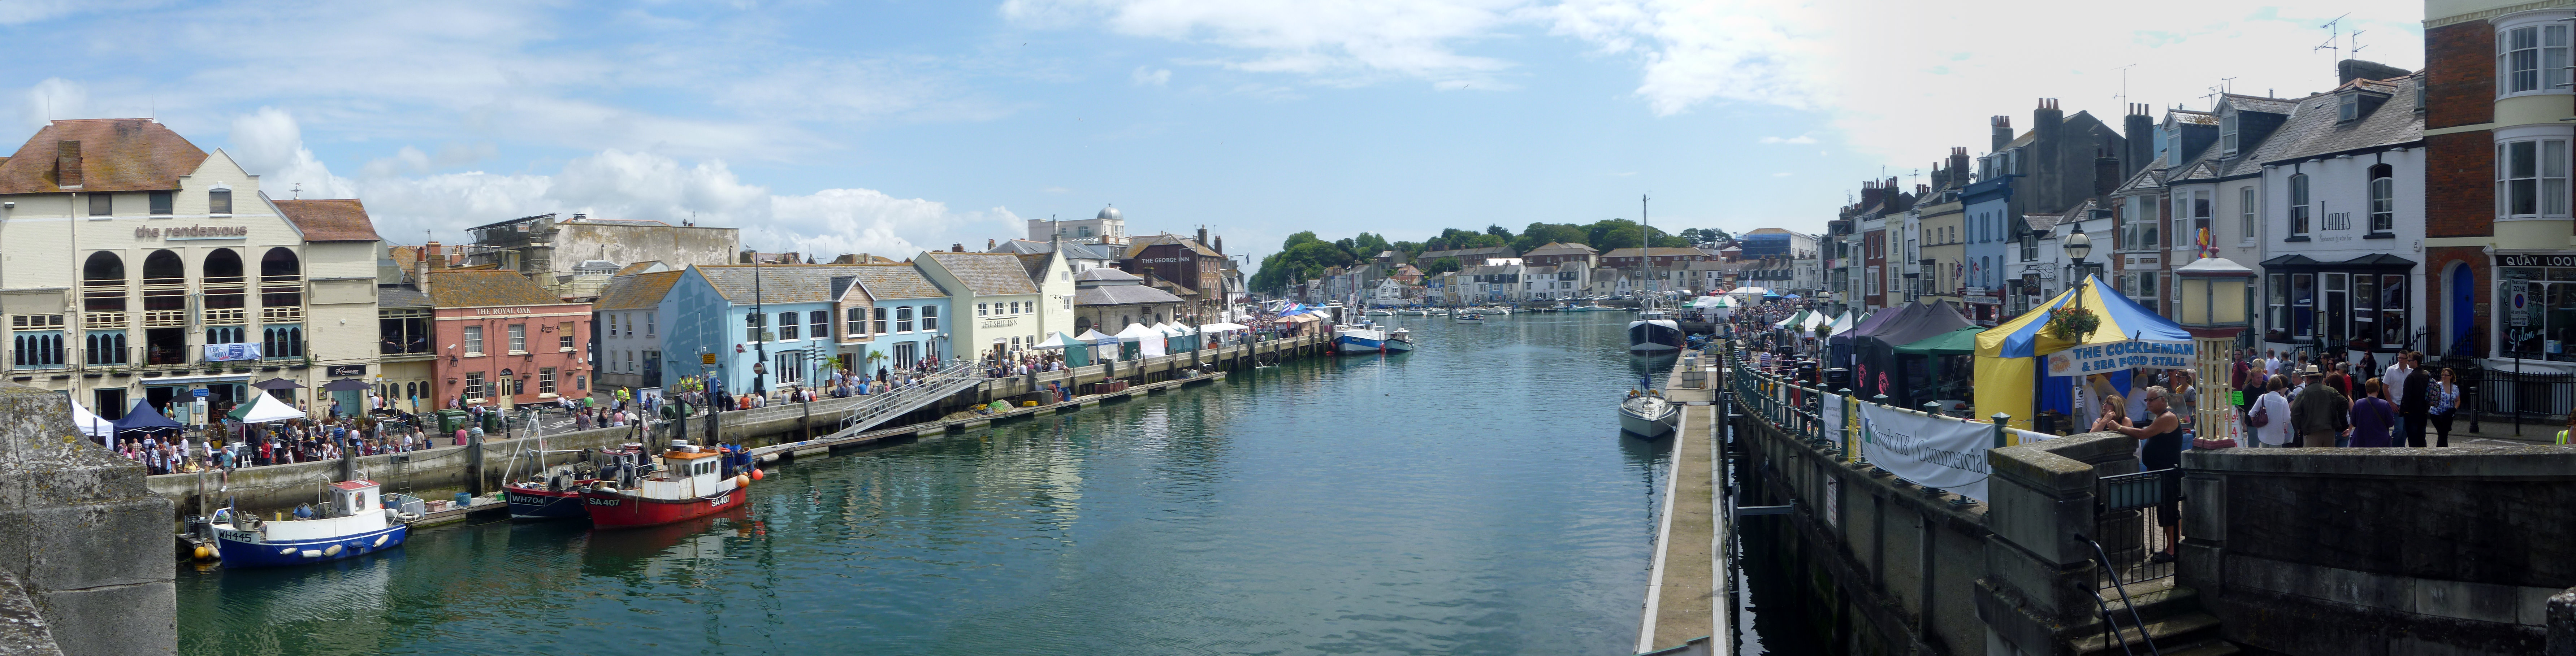 Hotels In Weymouth Town Centre